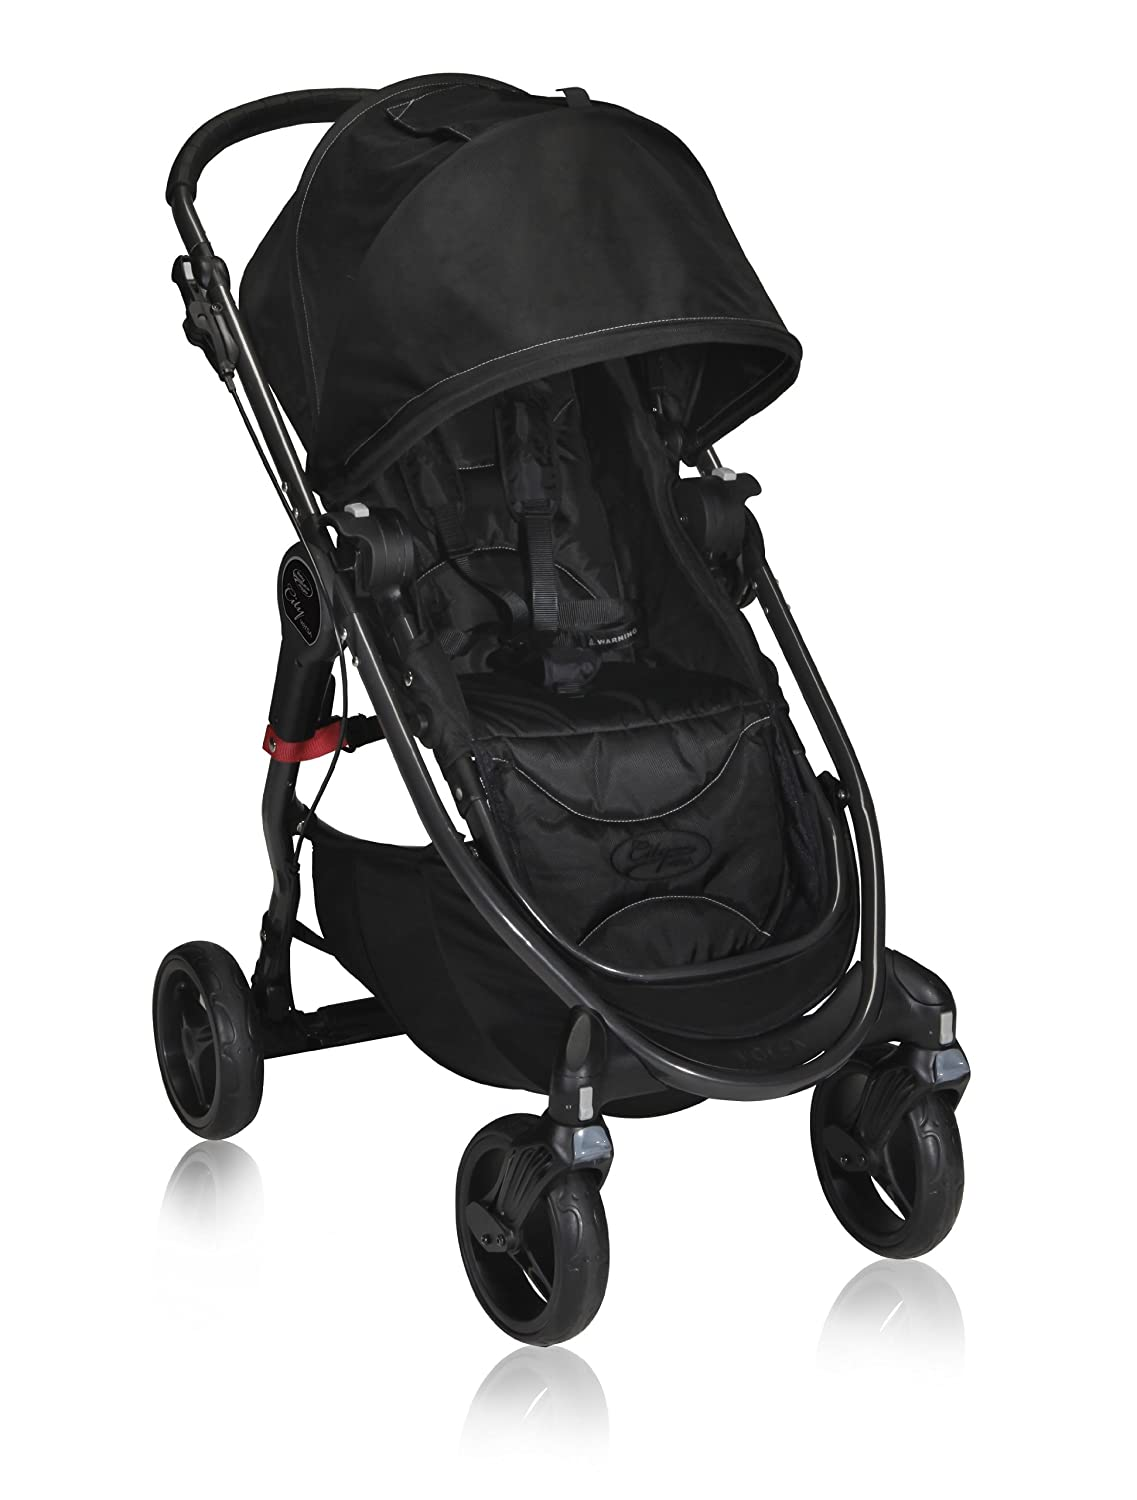 Amazon.com: Baby Jogger City Versa carriola, Negro ...